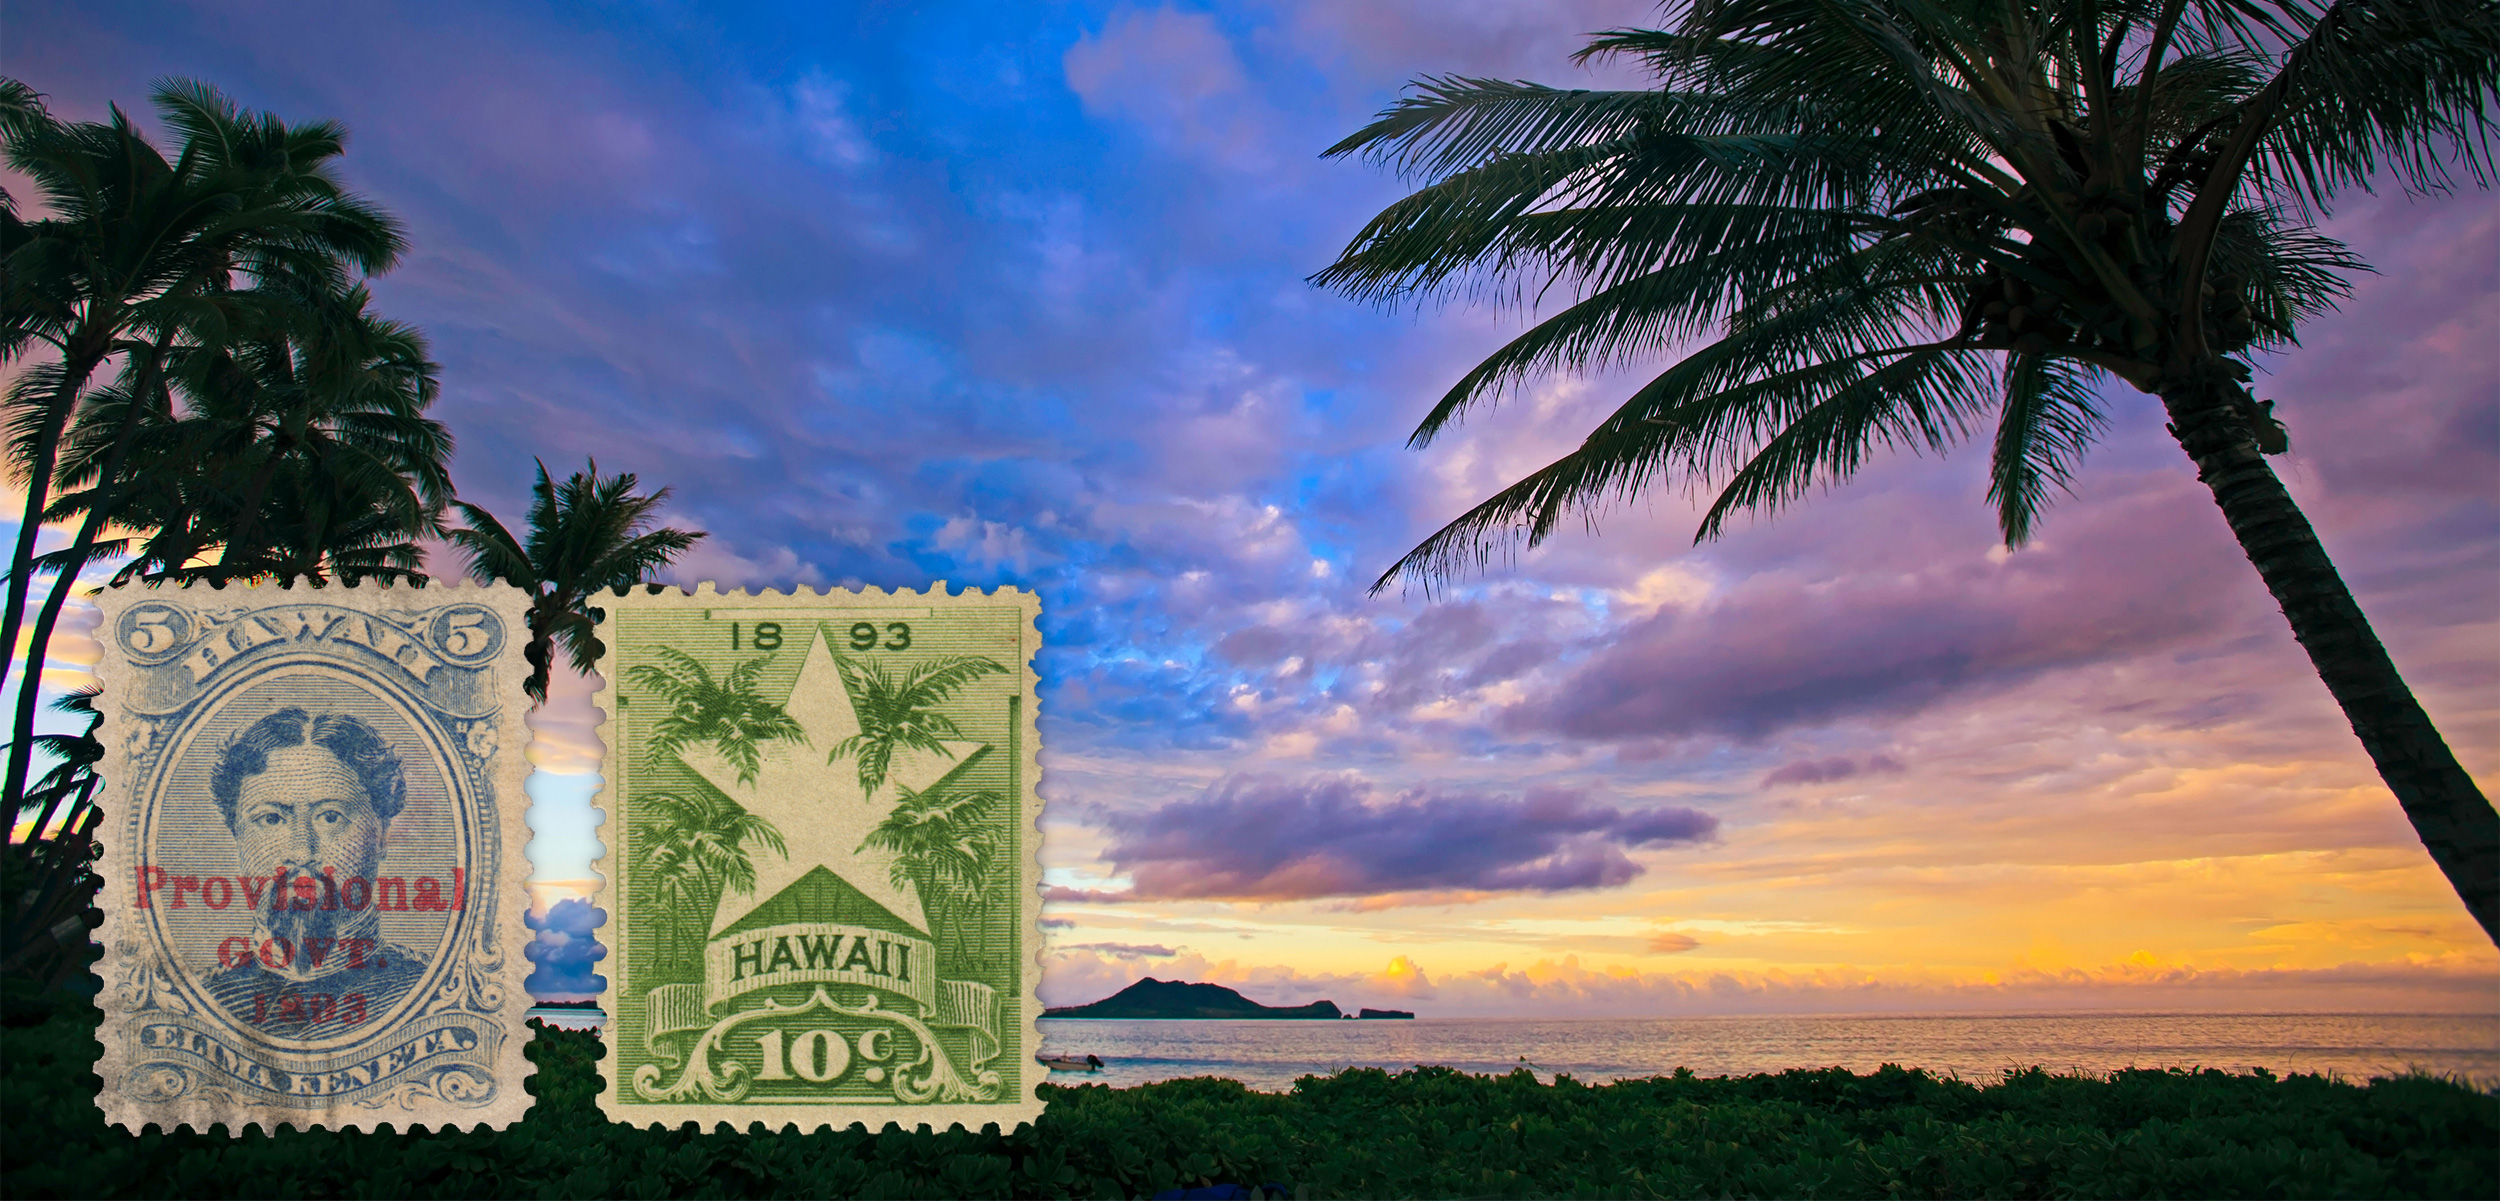 When the Provisional Government pushed its way into power in Hawai'i in 1893, it stamped its name over the royal portraits that adorned existing postage stamps. The new government then ordered new stamps, including the star and palms, which is a visual statement of its desire to Americanize the once-independent kingdom. Background photo by Tomas del Amo/Alamy Stock Photo